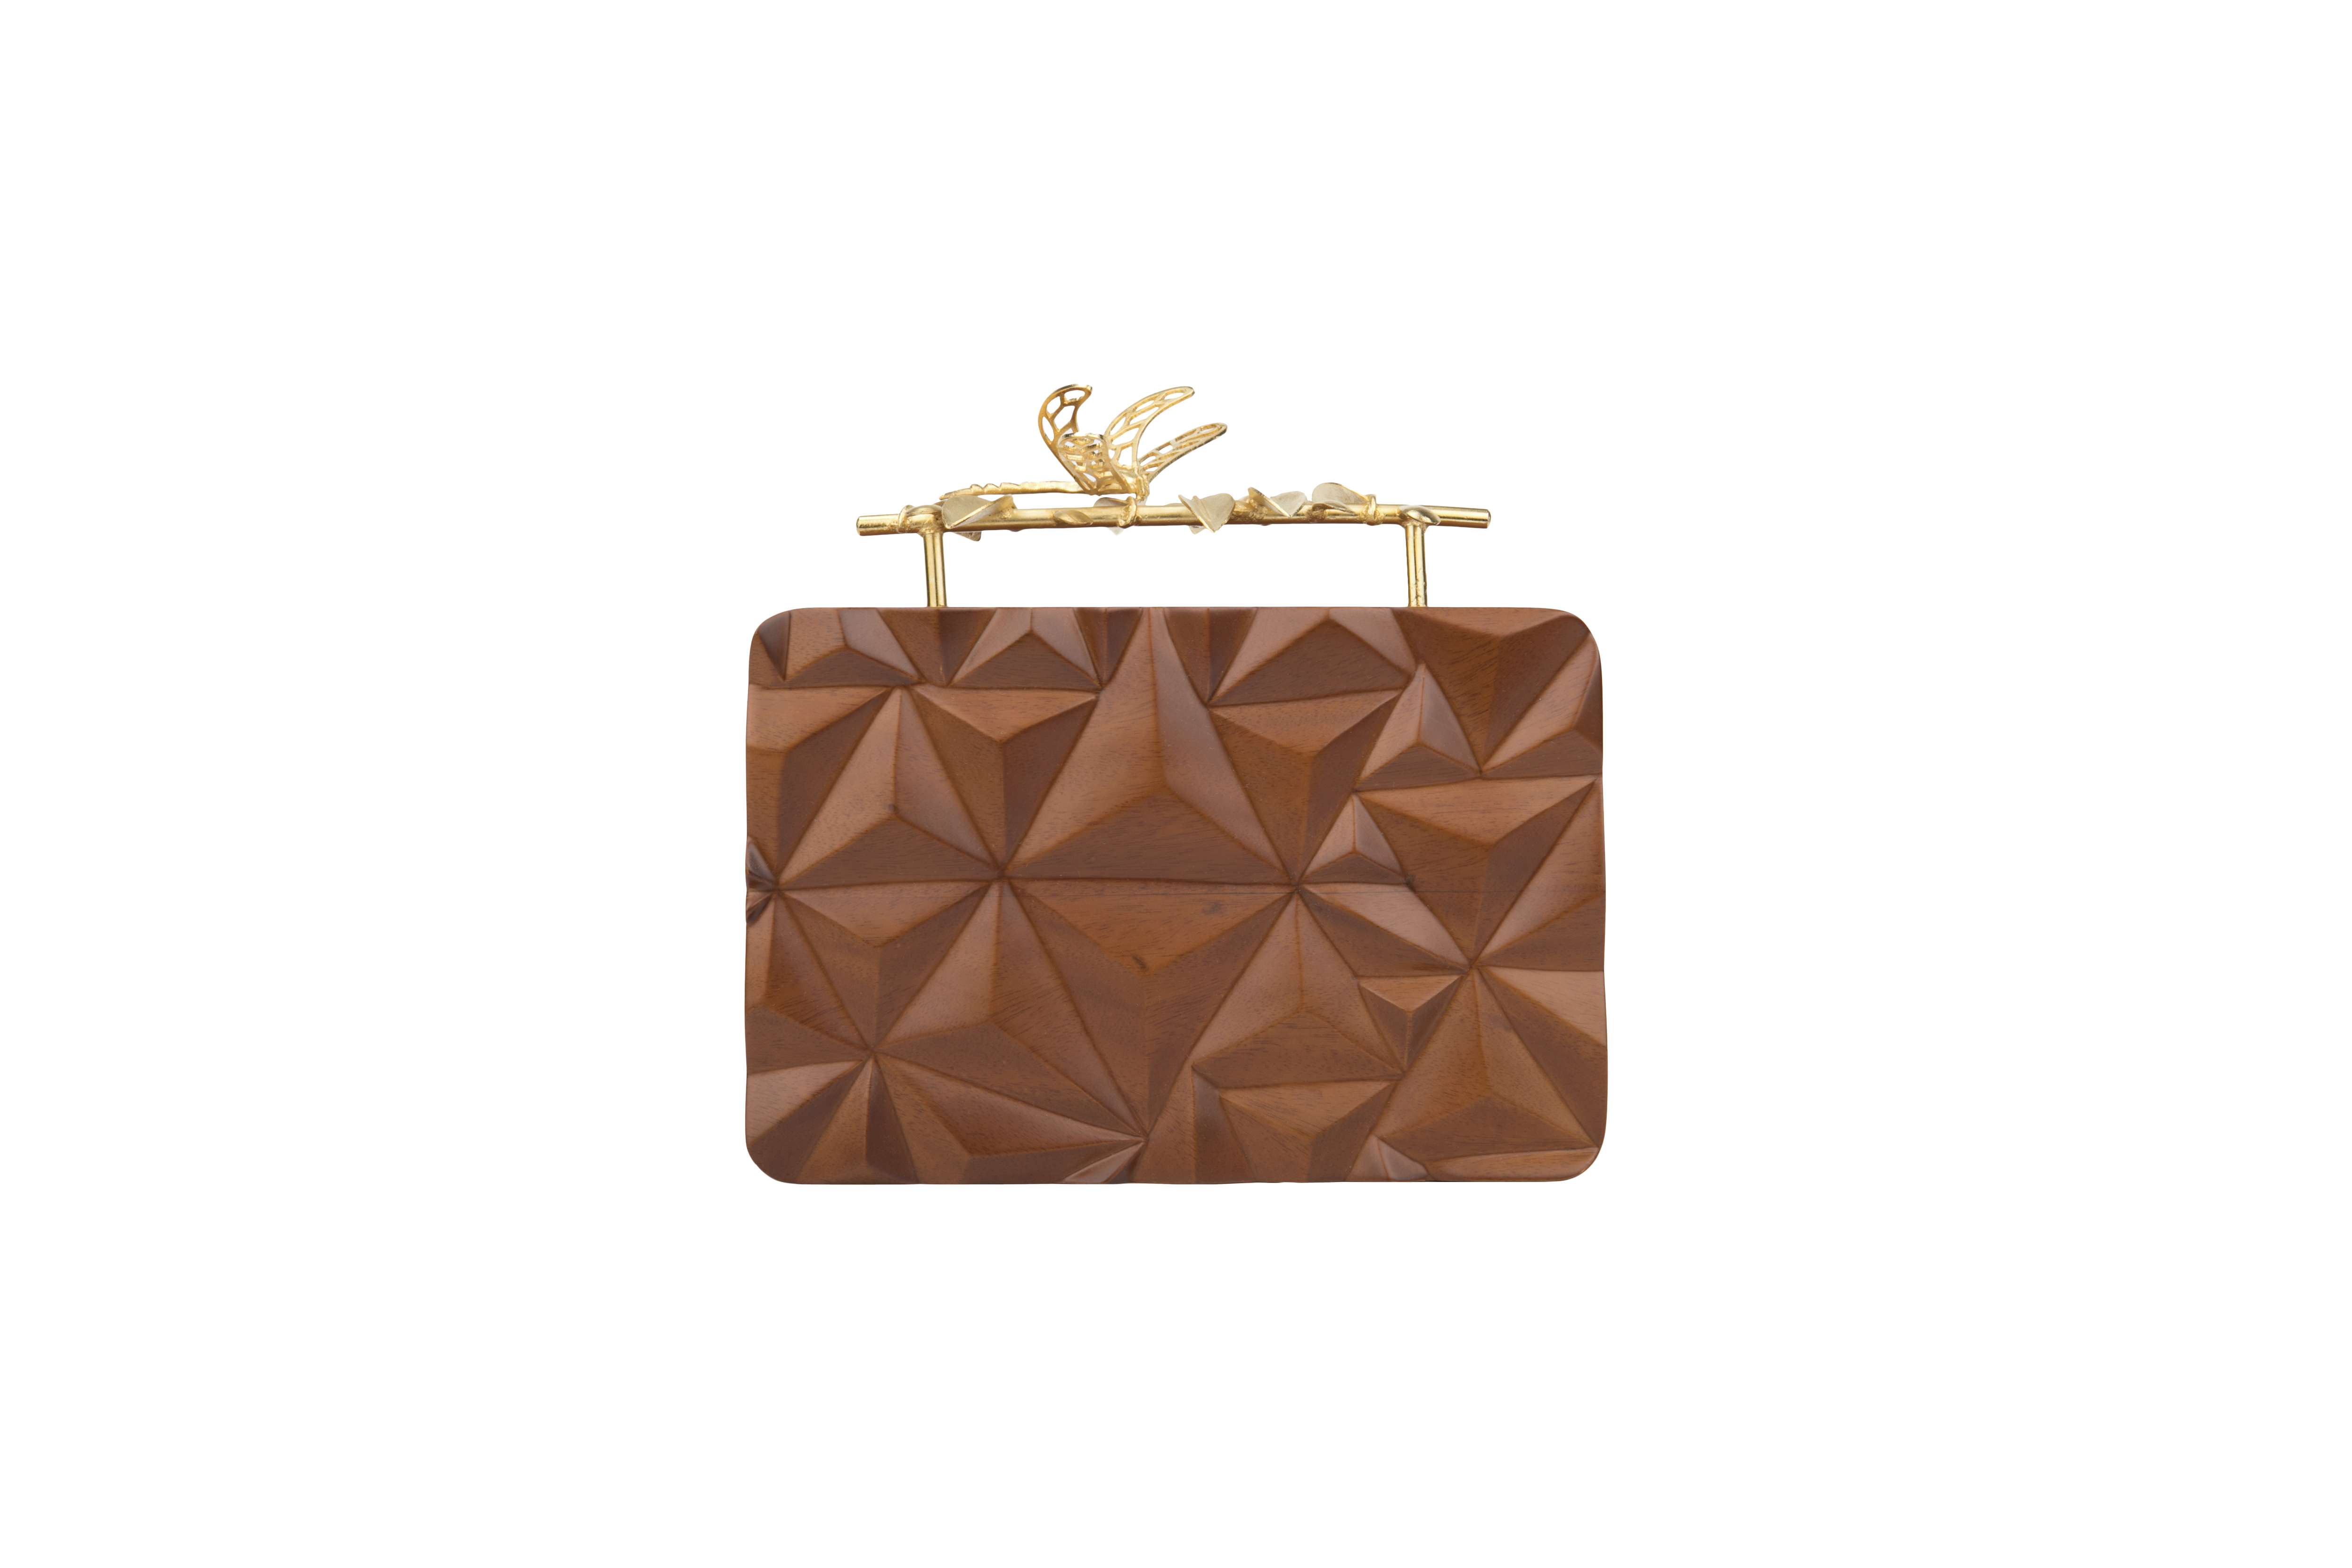 Triangle Wooden Firefly Clutch by Duet Luxury on curated-crowd.com